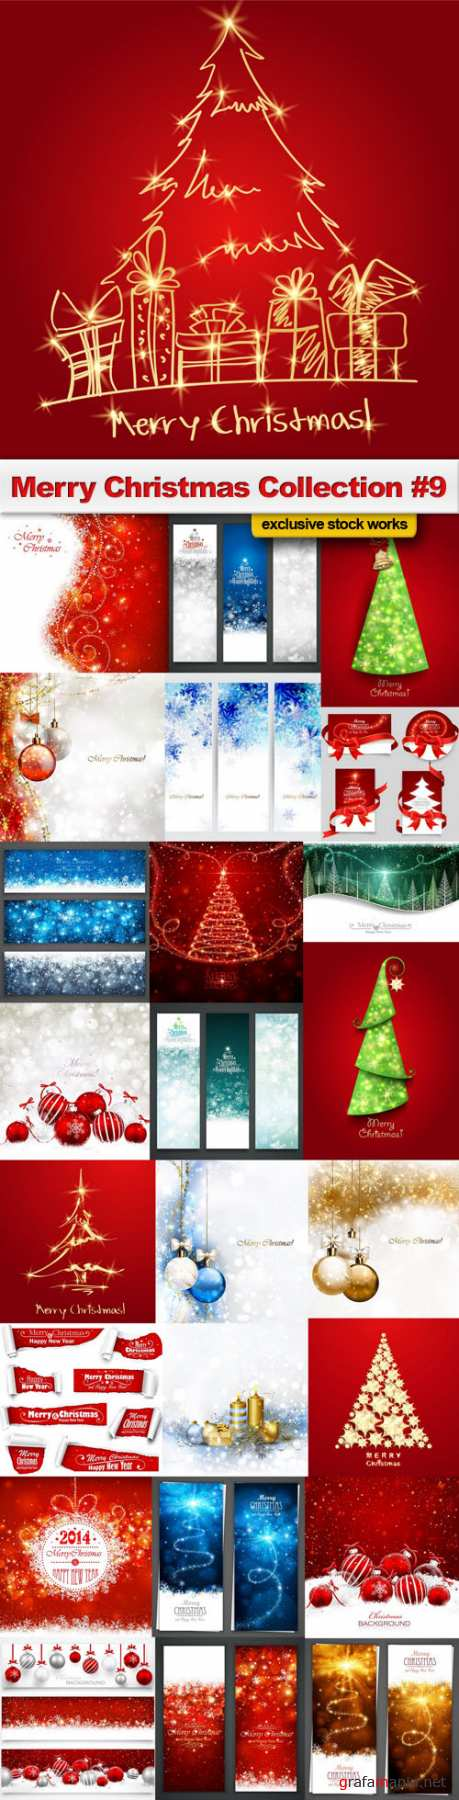 Merry Christmas Collection #9 - 25 EPS